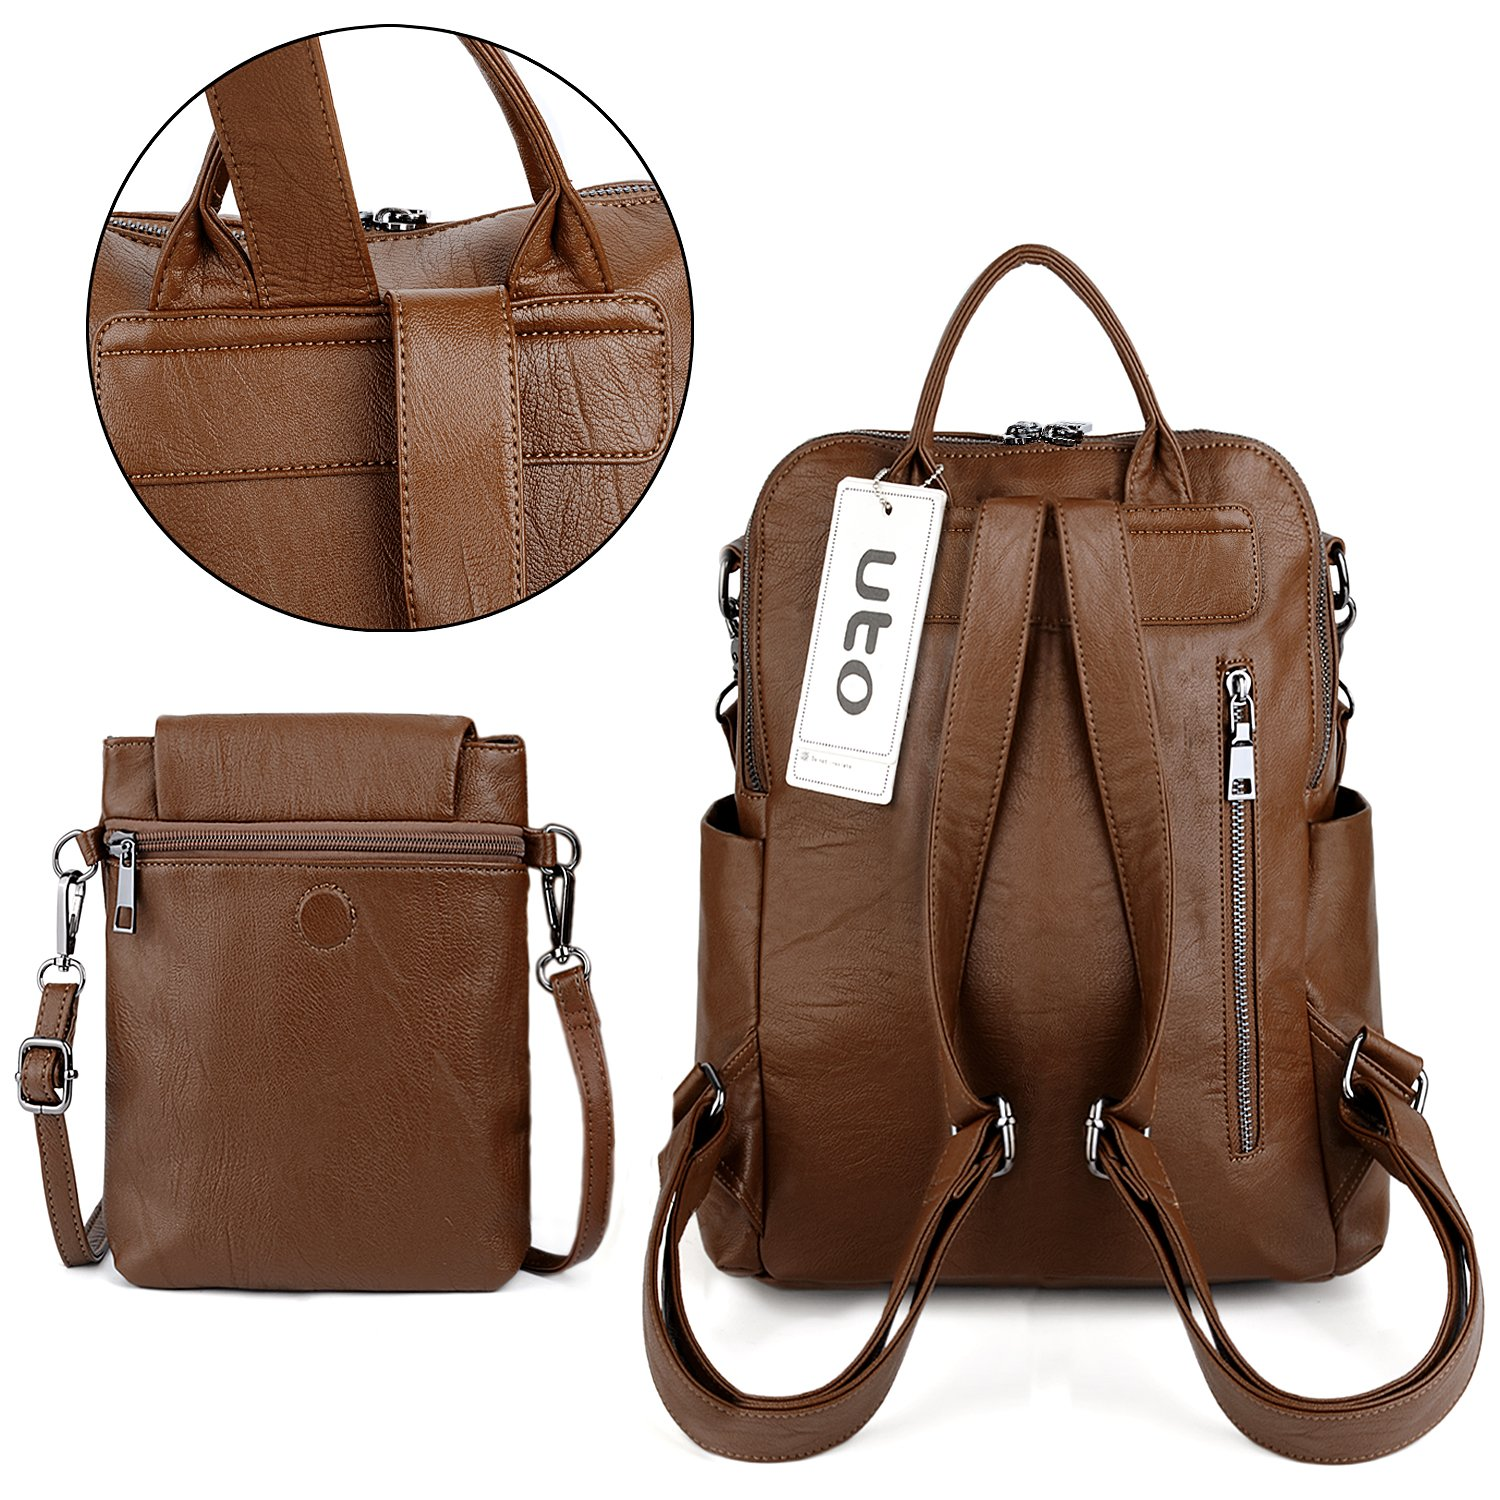 UTO Women Backpack Purse PU Washed Leather Ladies Rucksack Detachable Crossbody Shoulder Bag B Brown by UTO (Image #6)